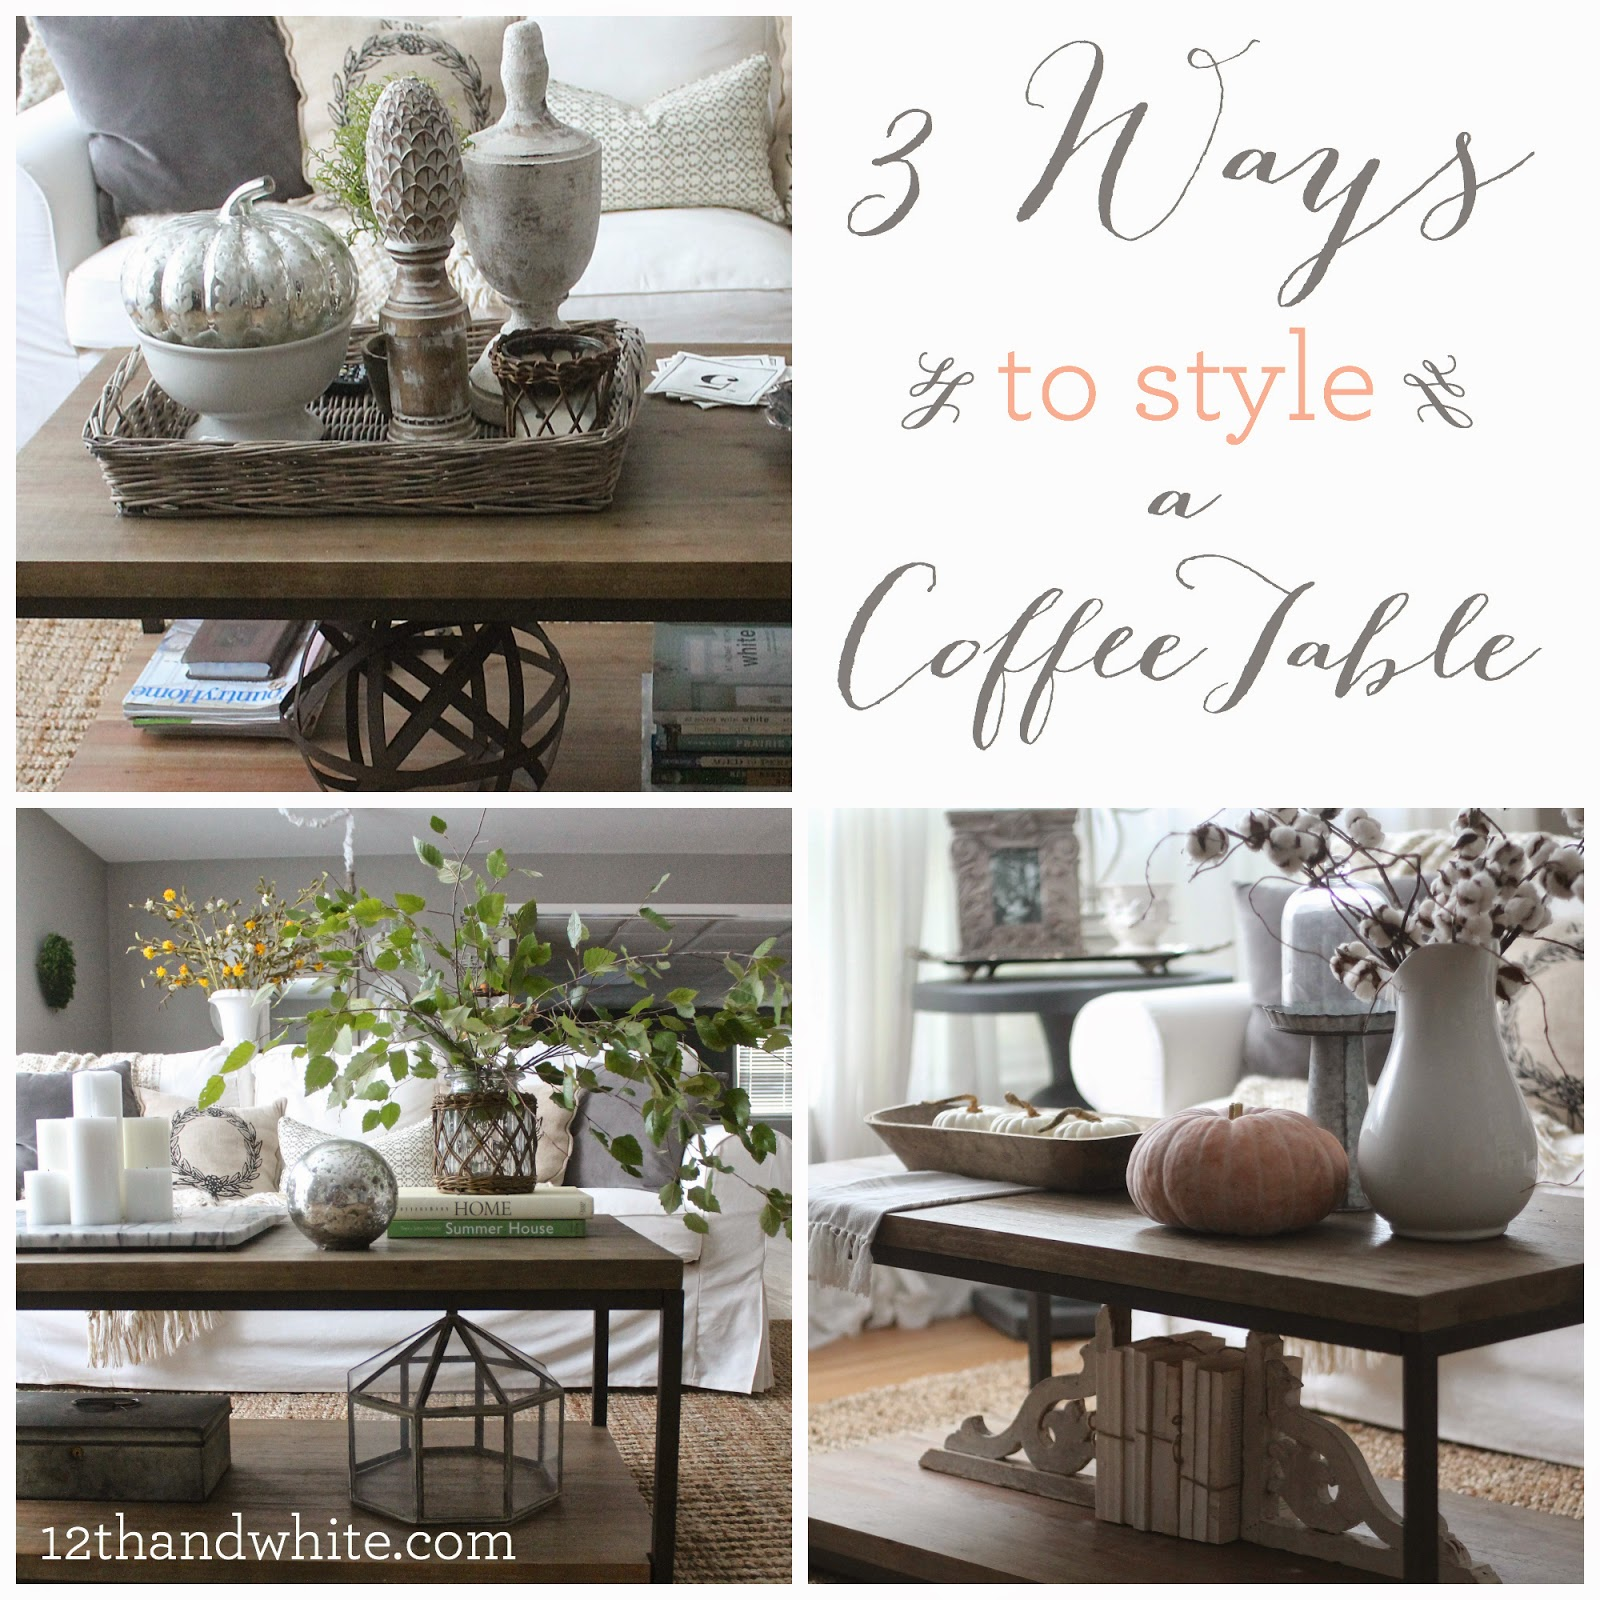 Decorate With Style 16 Chic Coffee Table Decor Ideas: 12th And White: 3 Ways To Style A Coffee Table